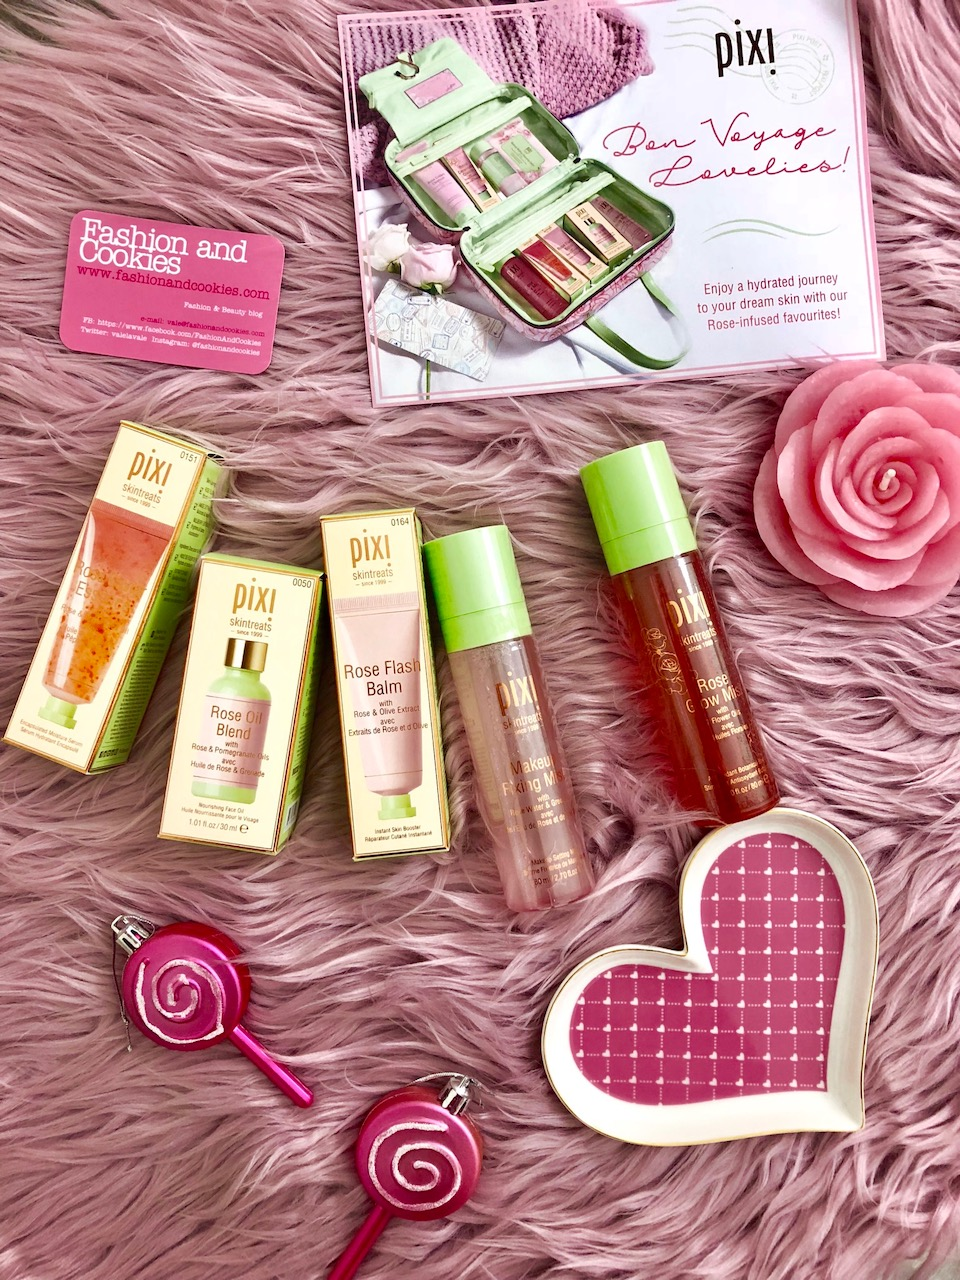 Pixi Beauty Ultra Luxe Rose-Infused Skintreats Set review on Fashion and Cookies beauty blog